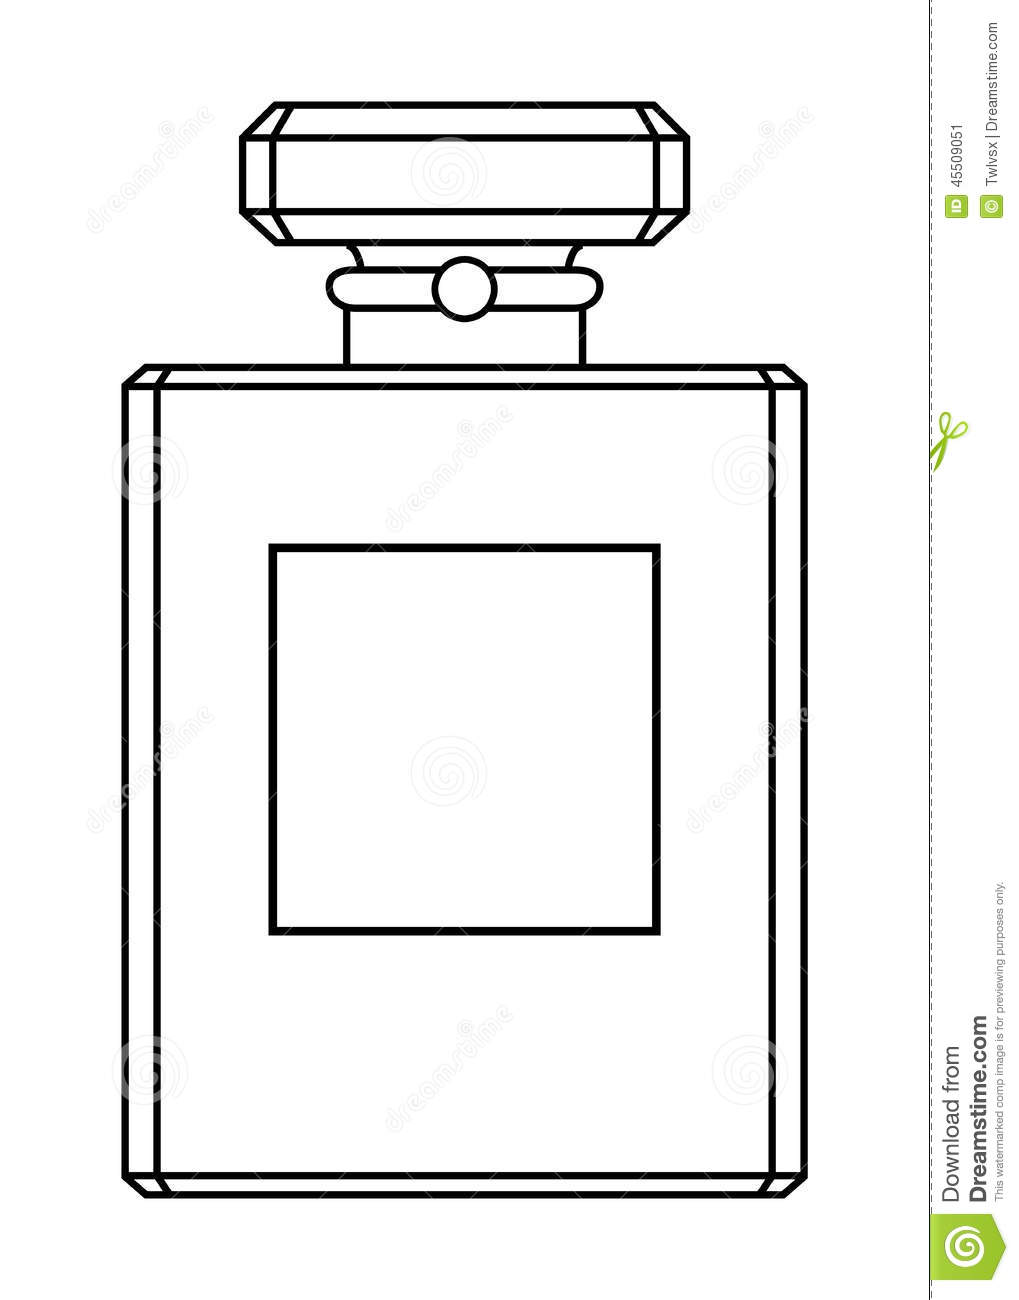 Parfum Kleurplaat Perfume Bottle Stock Vector Illustration Of Empty